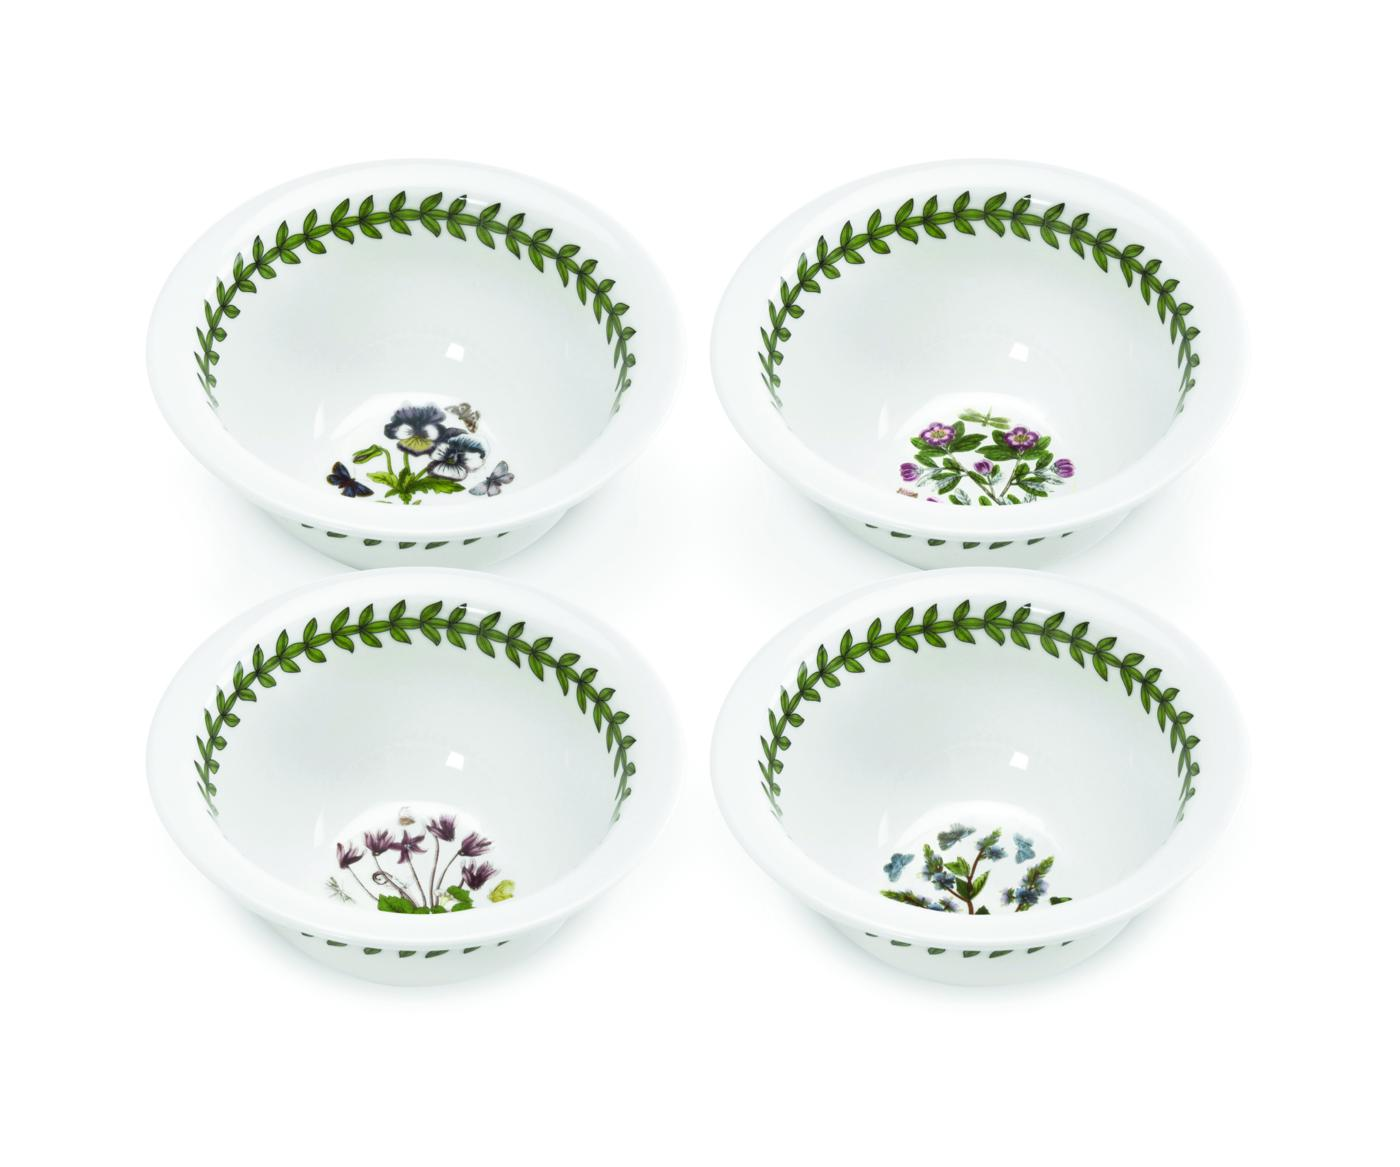 Botanic Garden Set of 4 Round Mini Bowls (Assorted Motifs) image number 0